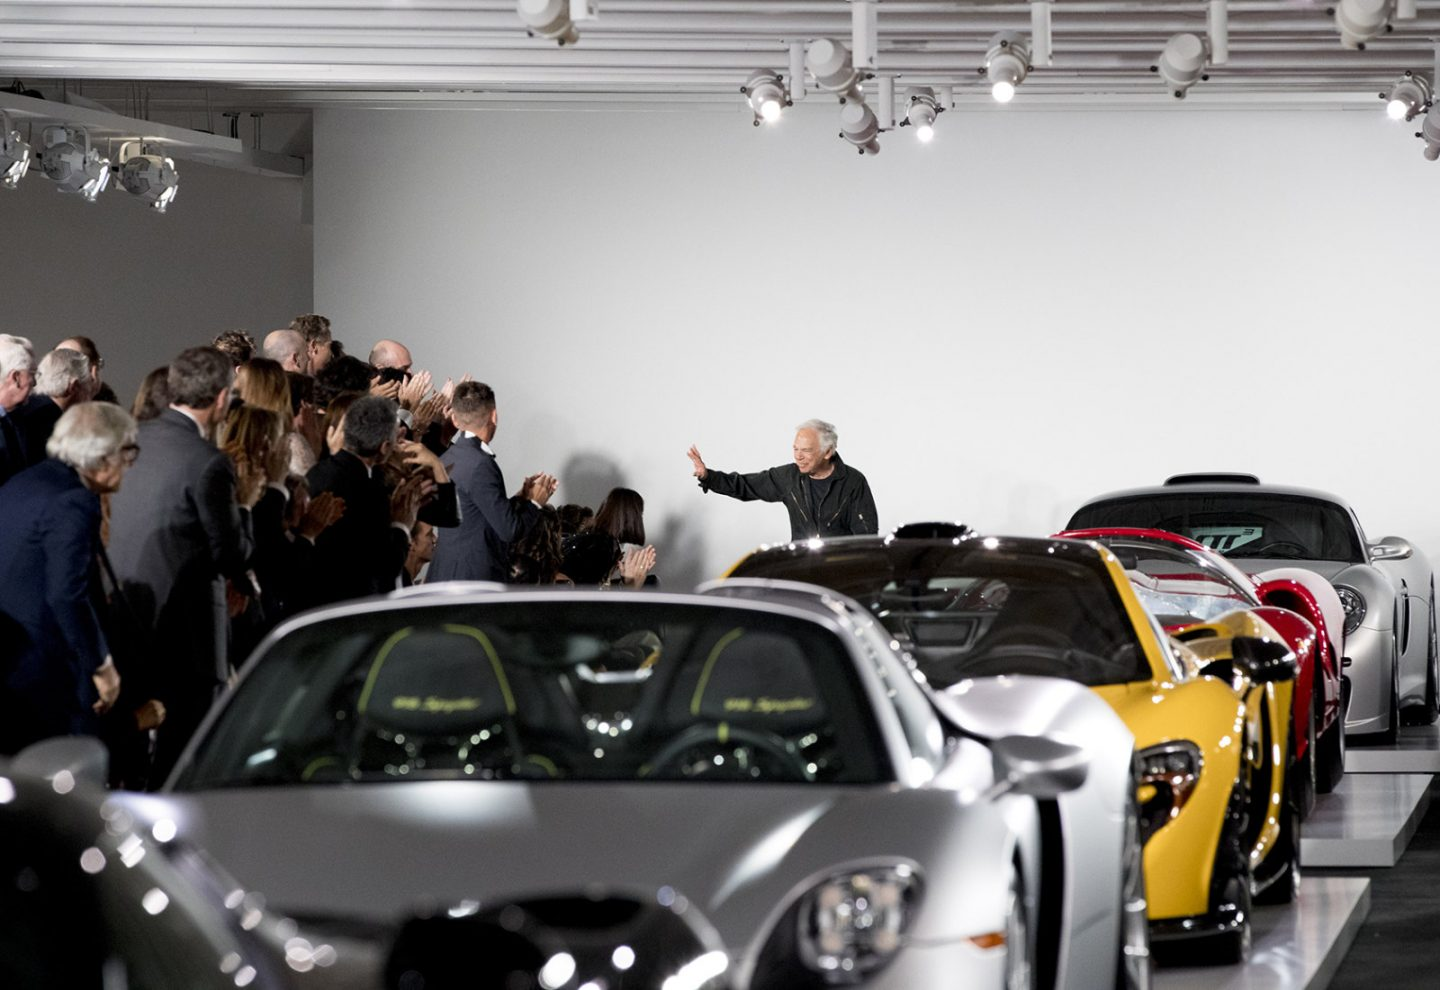 Ralph Lauren hosts a fall collection alongside his cars; Kendall Jenner, Bella Hadid model